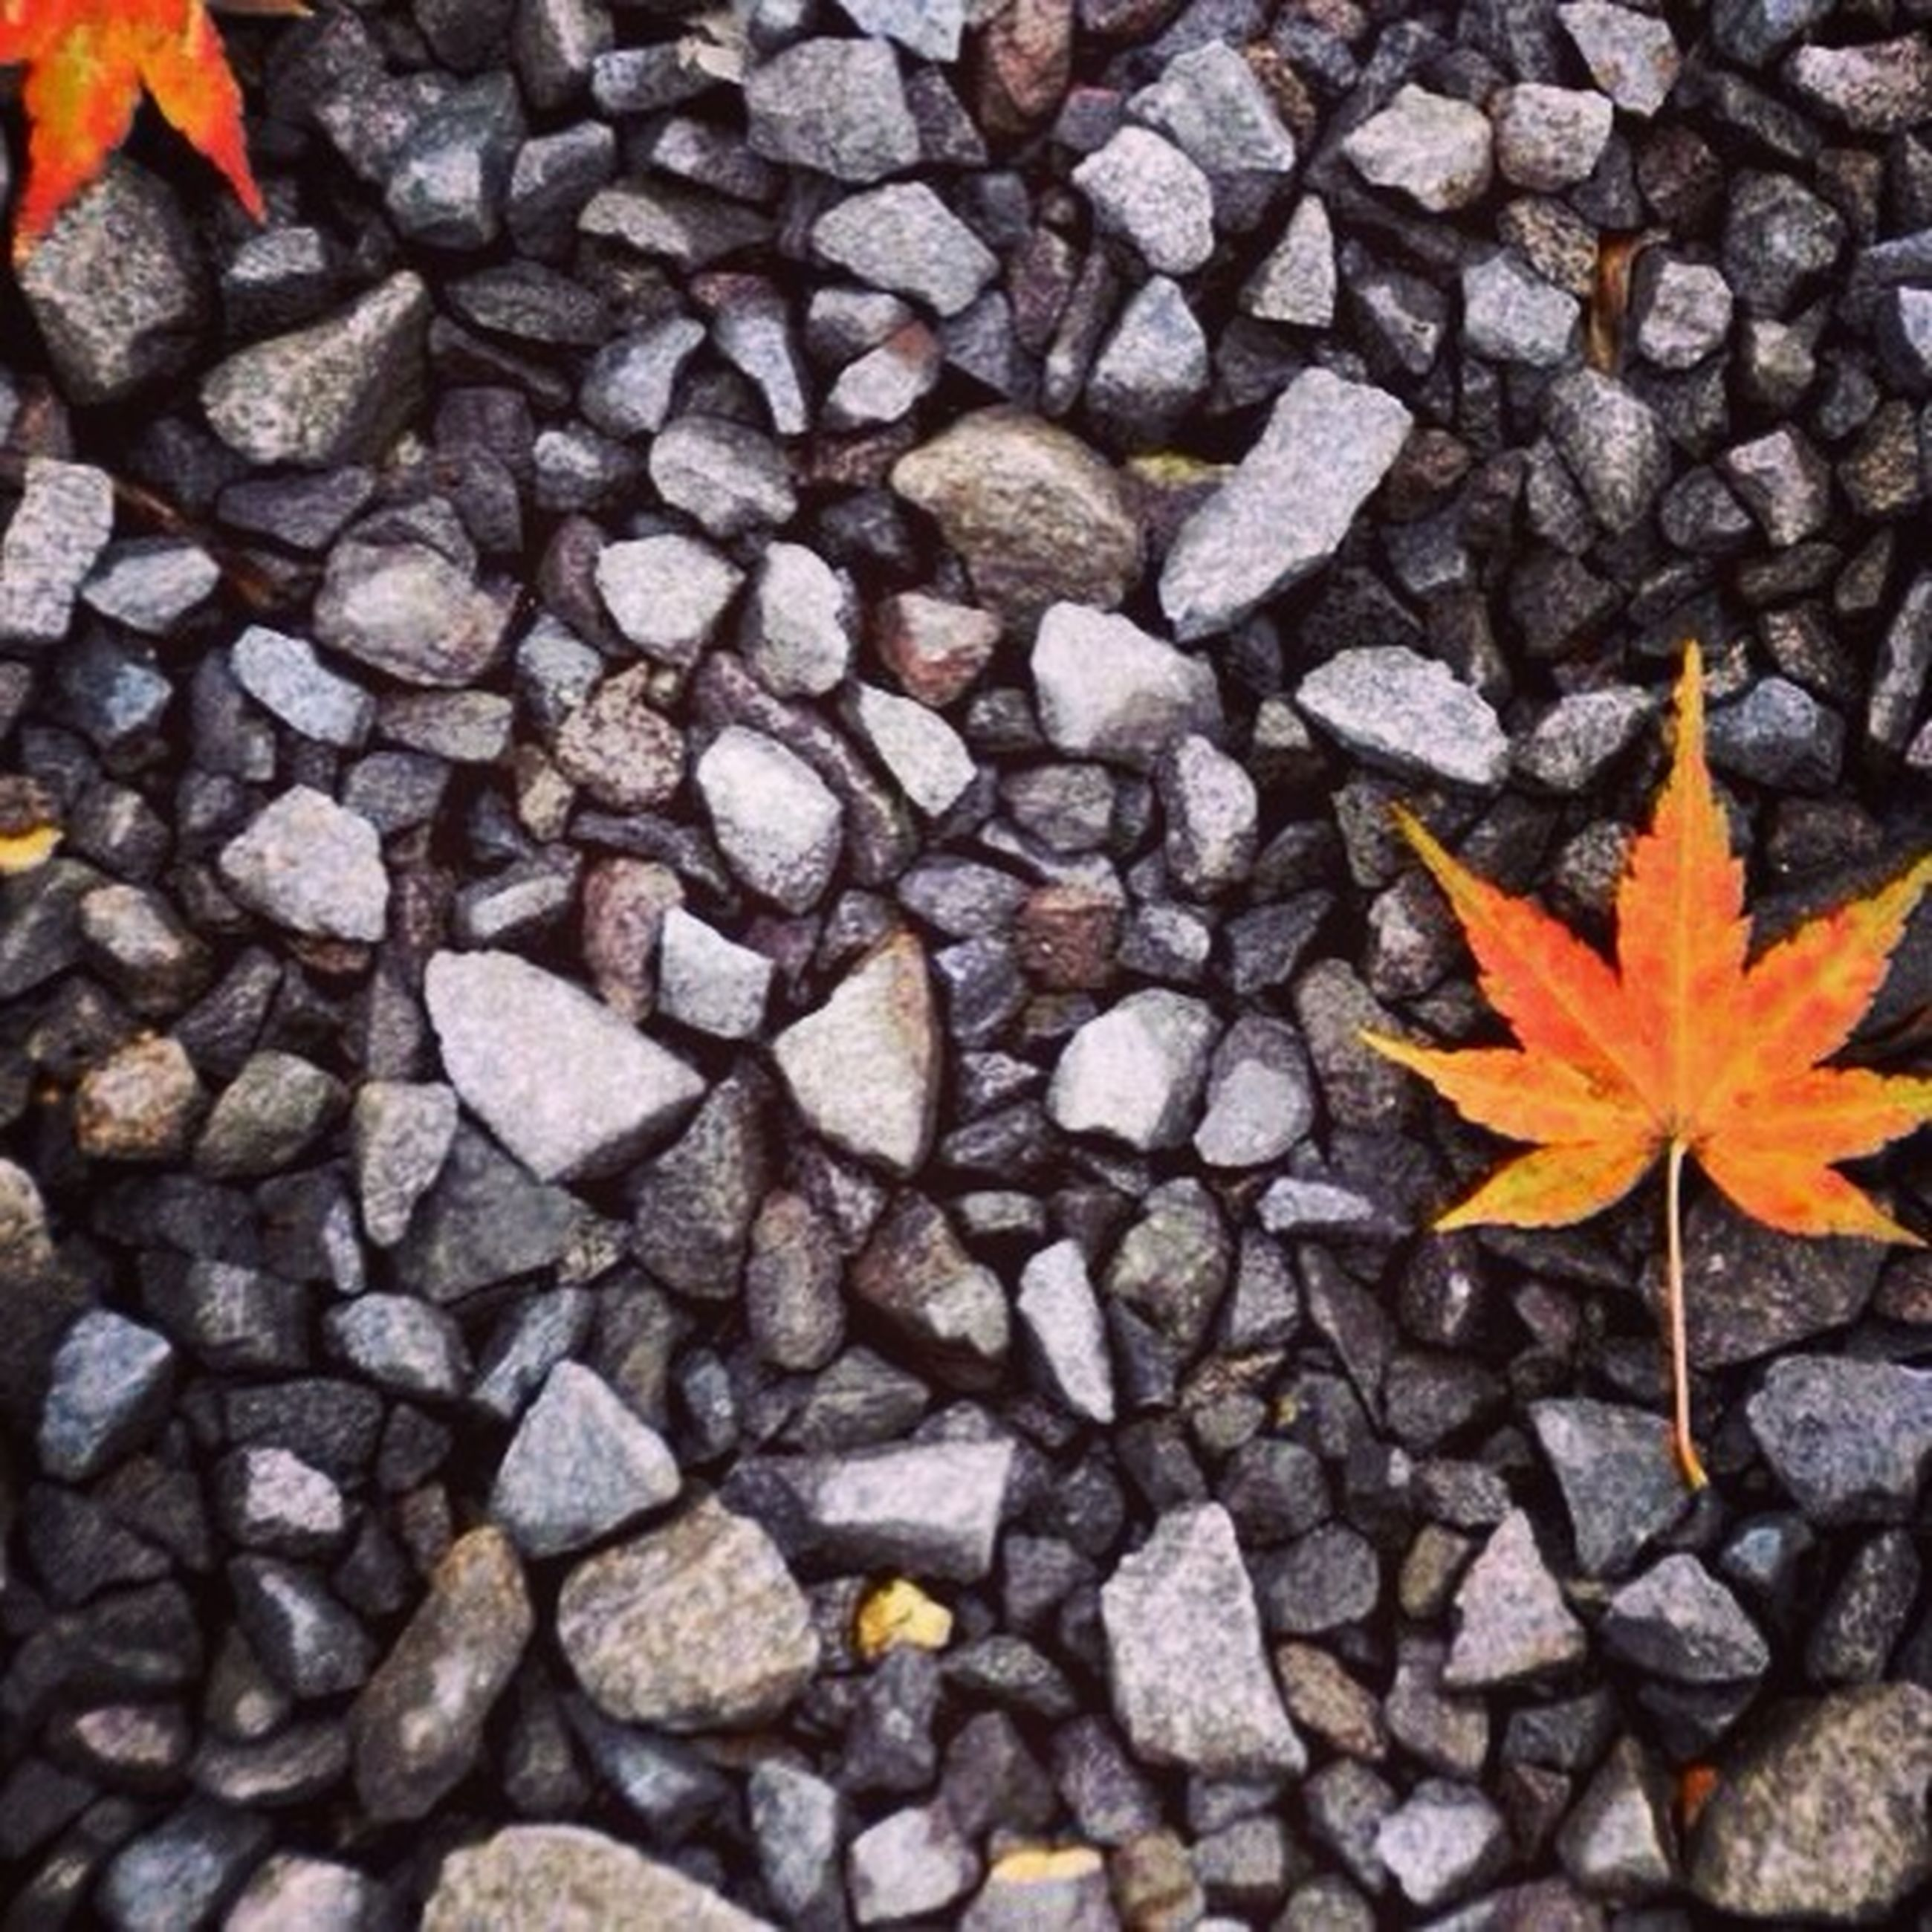 autumn, change, season, abundance, leaf, orange color, fallen, large group of objects, dry, high angle view, leaves, nature, backgrounds, full frame, yellow, maple leaf, stone - object, day, outdoors, beauty in nature